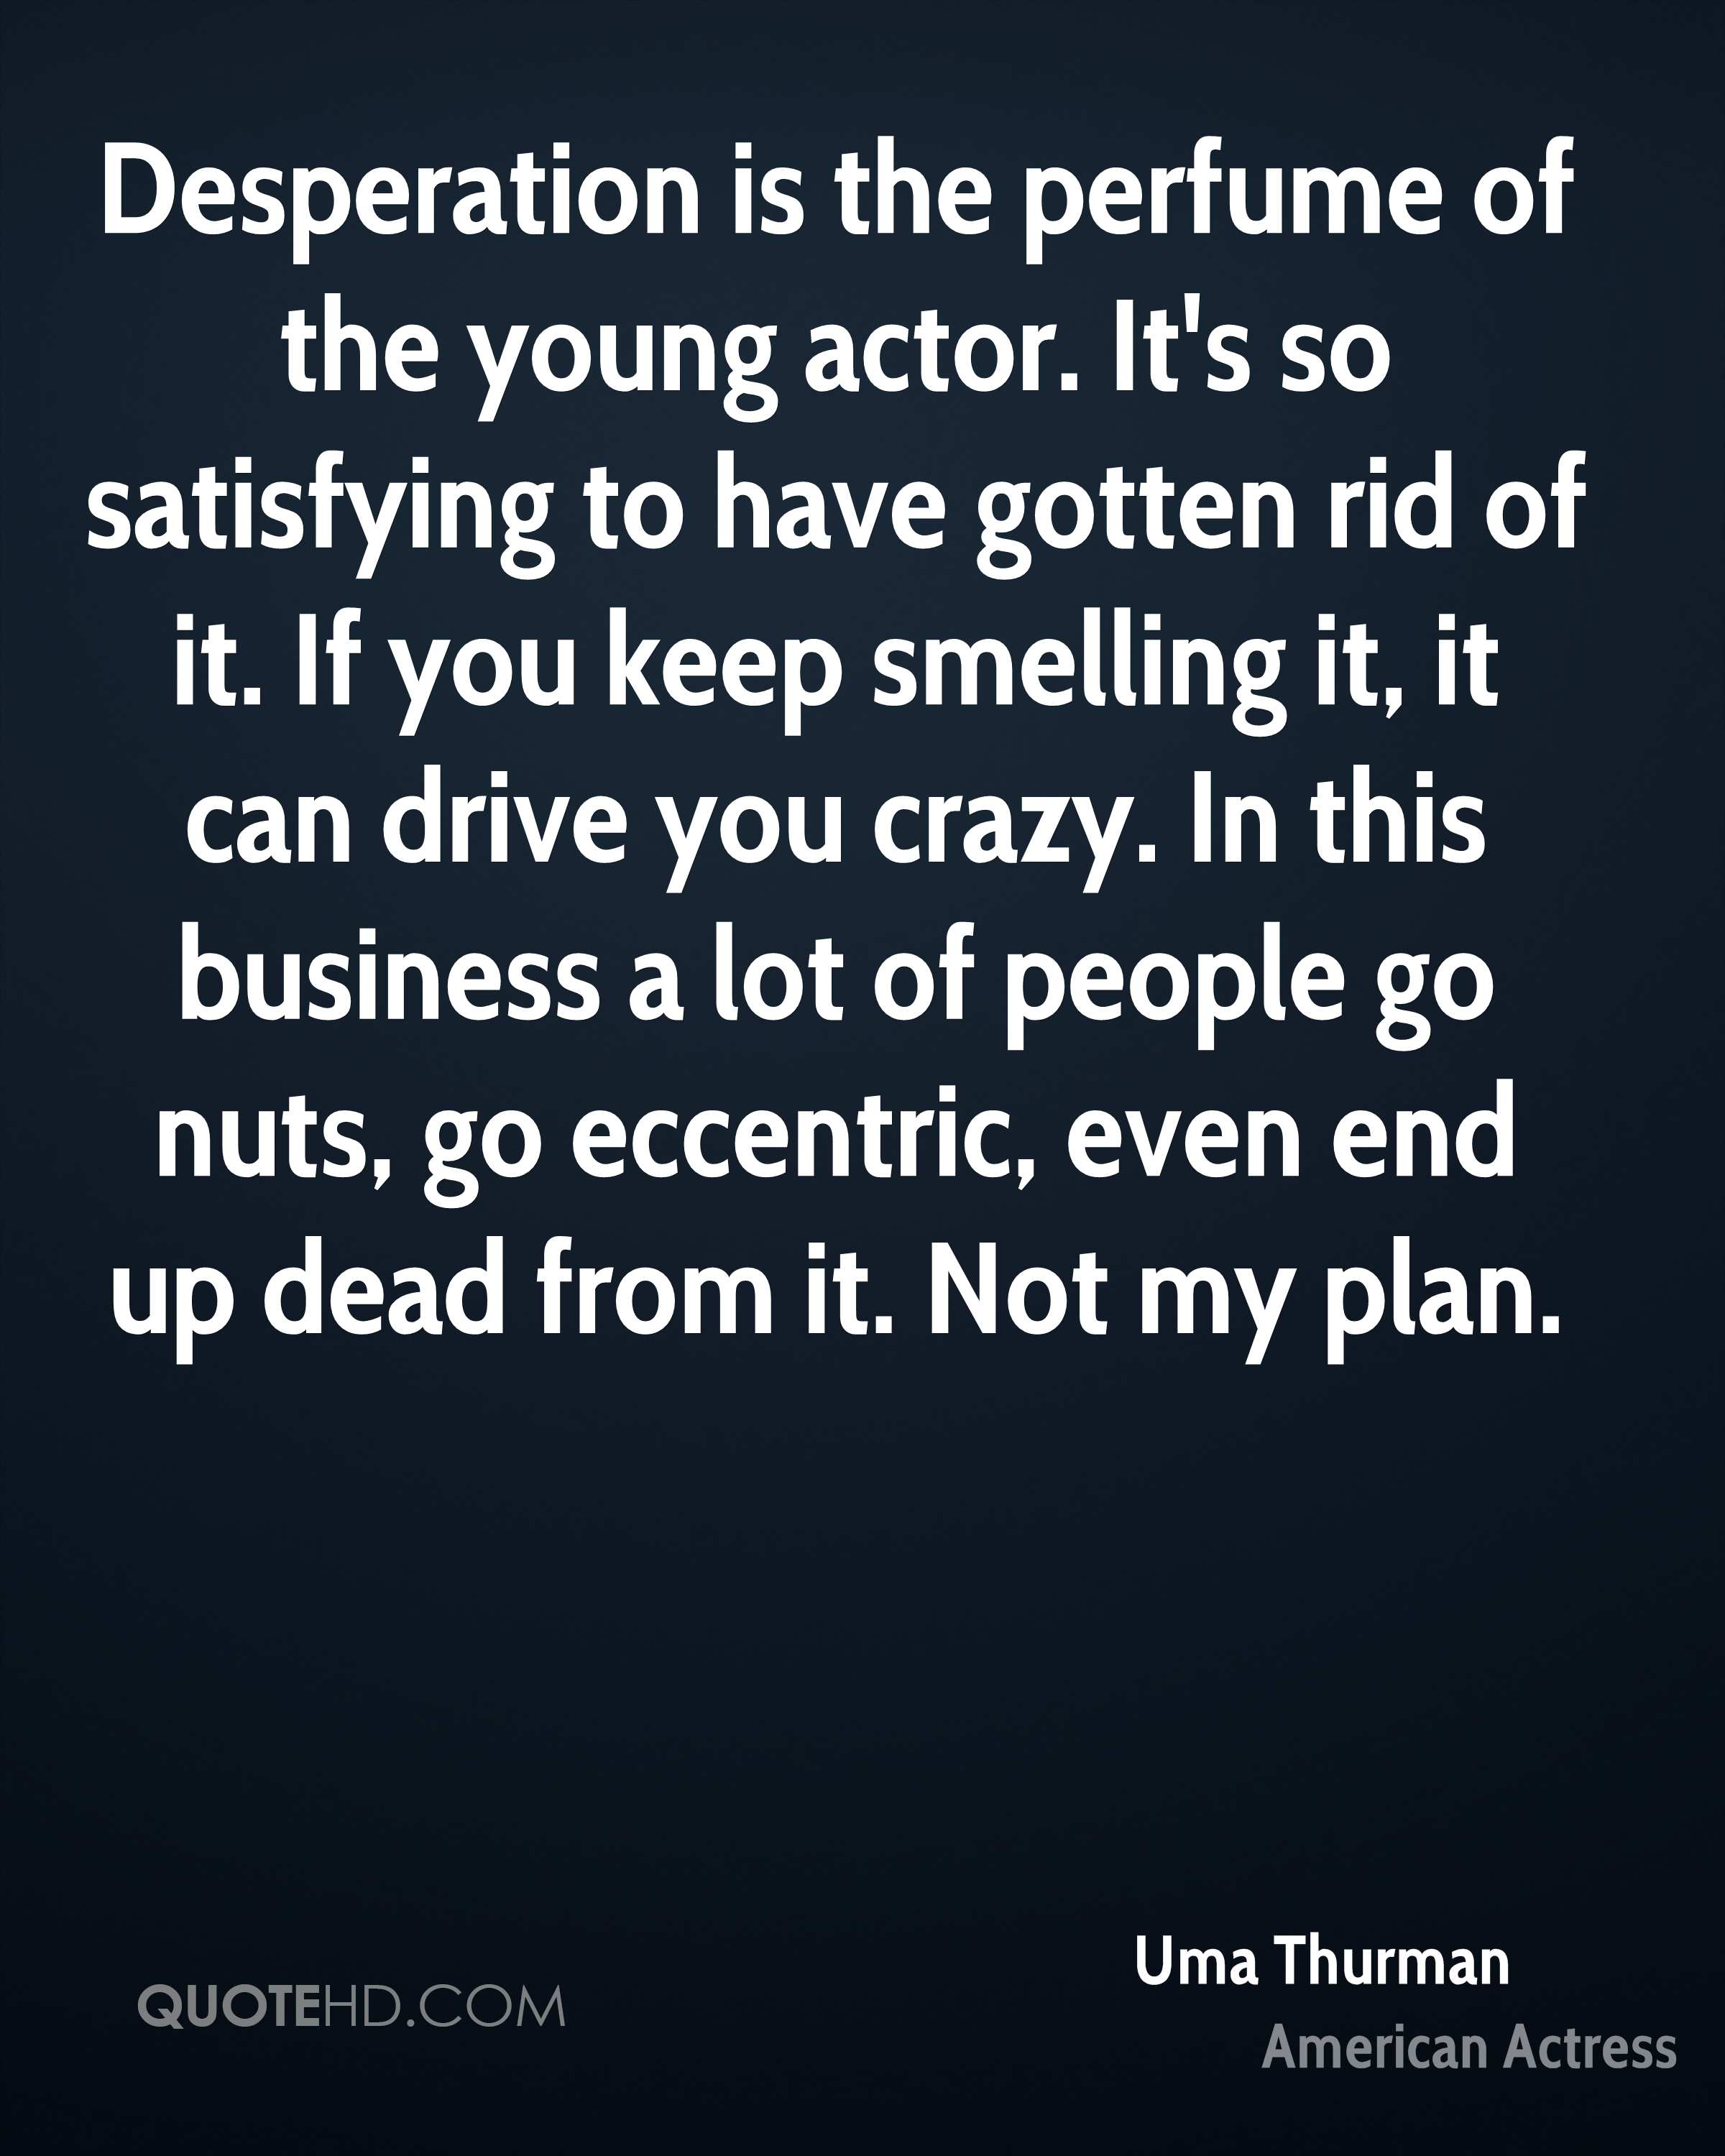 Desperation is the perfume of the young actor. It's so satisfying to have gotten rid of it. If you keep smelling it, it can drive you crazy. In this business a lot of people go nuts, go eccentric, even end up dead from it. Not my plan.